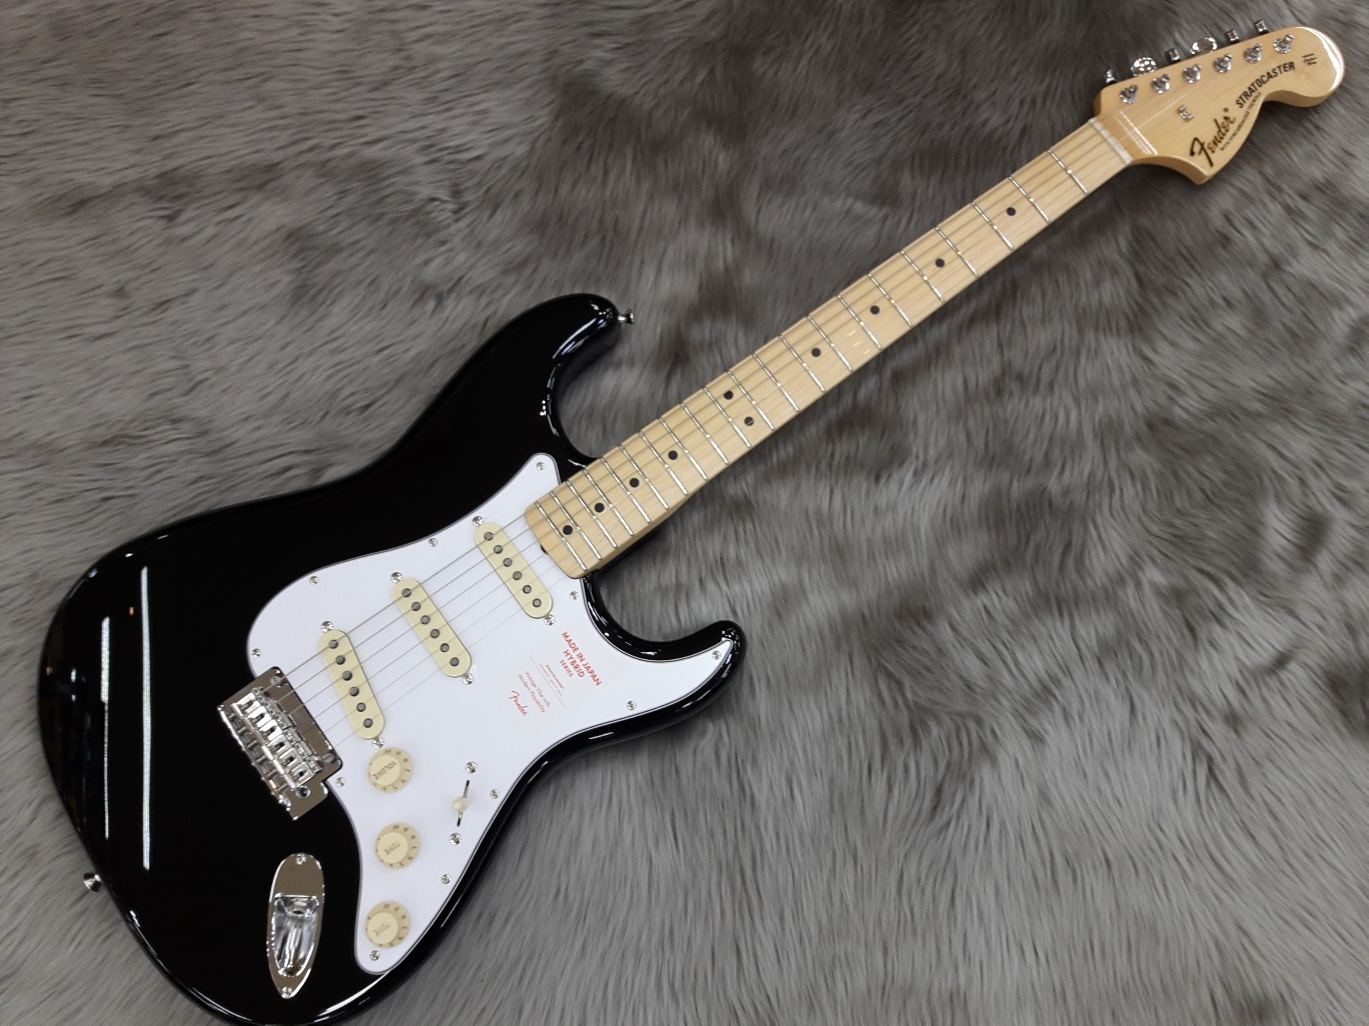 MADE IN JAPAN HYBRID 68 Stratocasterのボディトップ-アップ画像